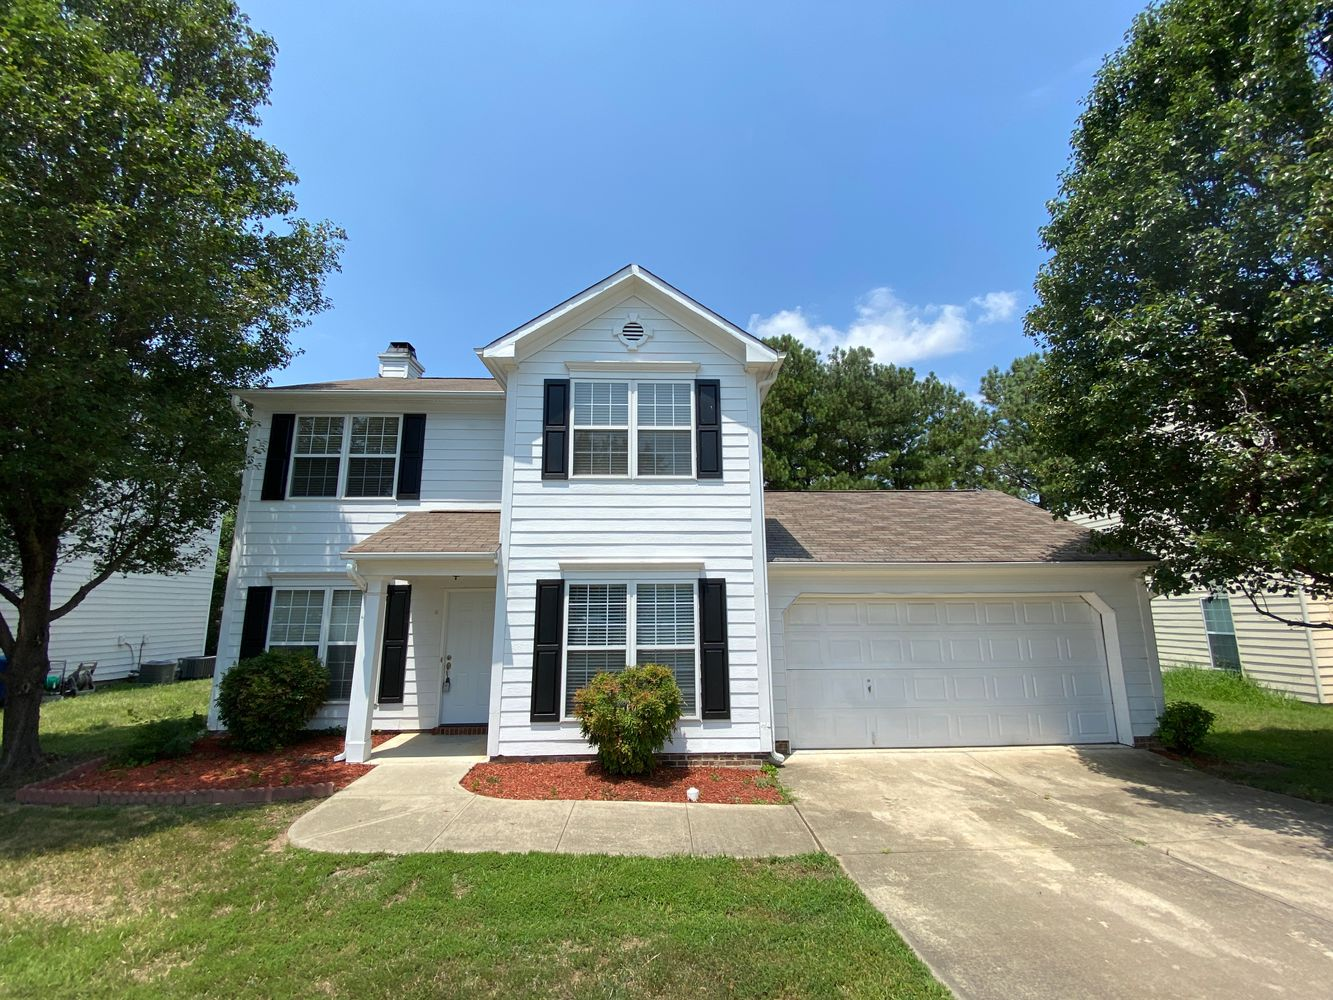 Alcove: Bedrooms for rent at 706 Bellmeade Bay Dr, Durham NC 27703